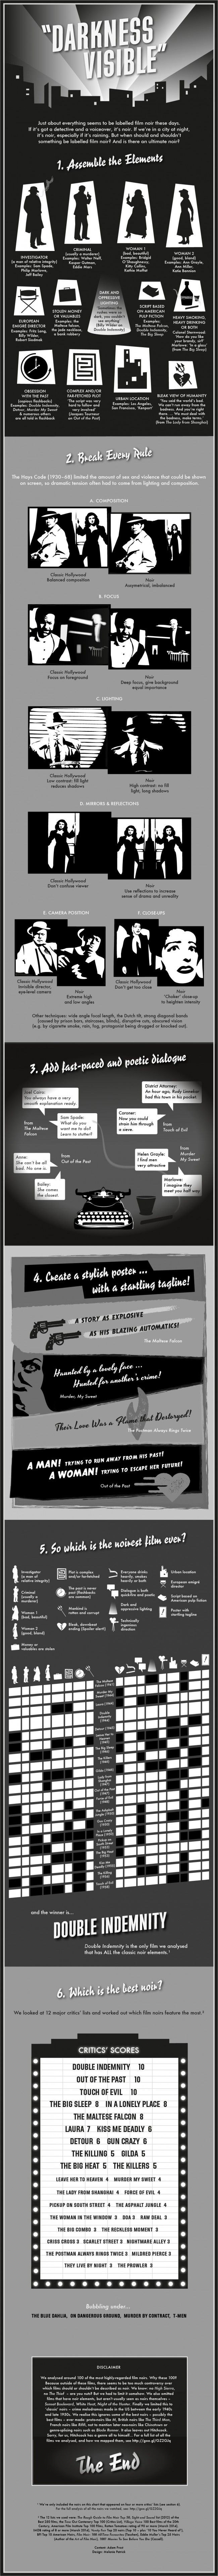 May 26, 2016, 12:00 pm The Essential Elements of Film Noir Explained in One Grand Infographic http://feedproxy.google.com/~r/OpenCulture/~3/5GfcxrmHTp4/the-essential-elements-of-film-noir-explained-in-one-grand-infographic.html I love all this, don't you? Visit our blog @ http://www.newhuecomicsmangaandanime.com/